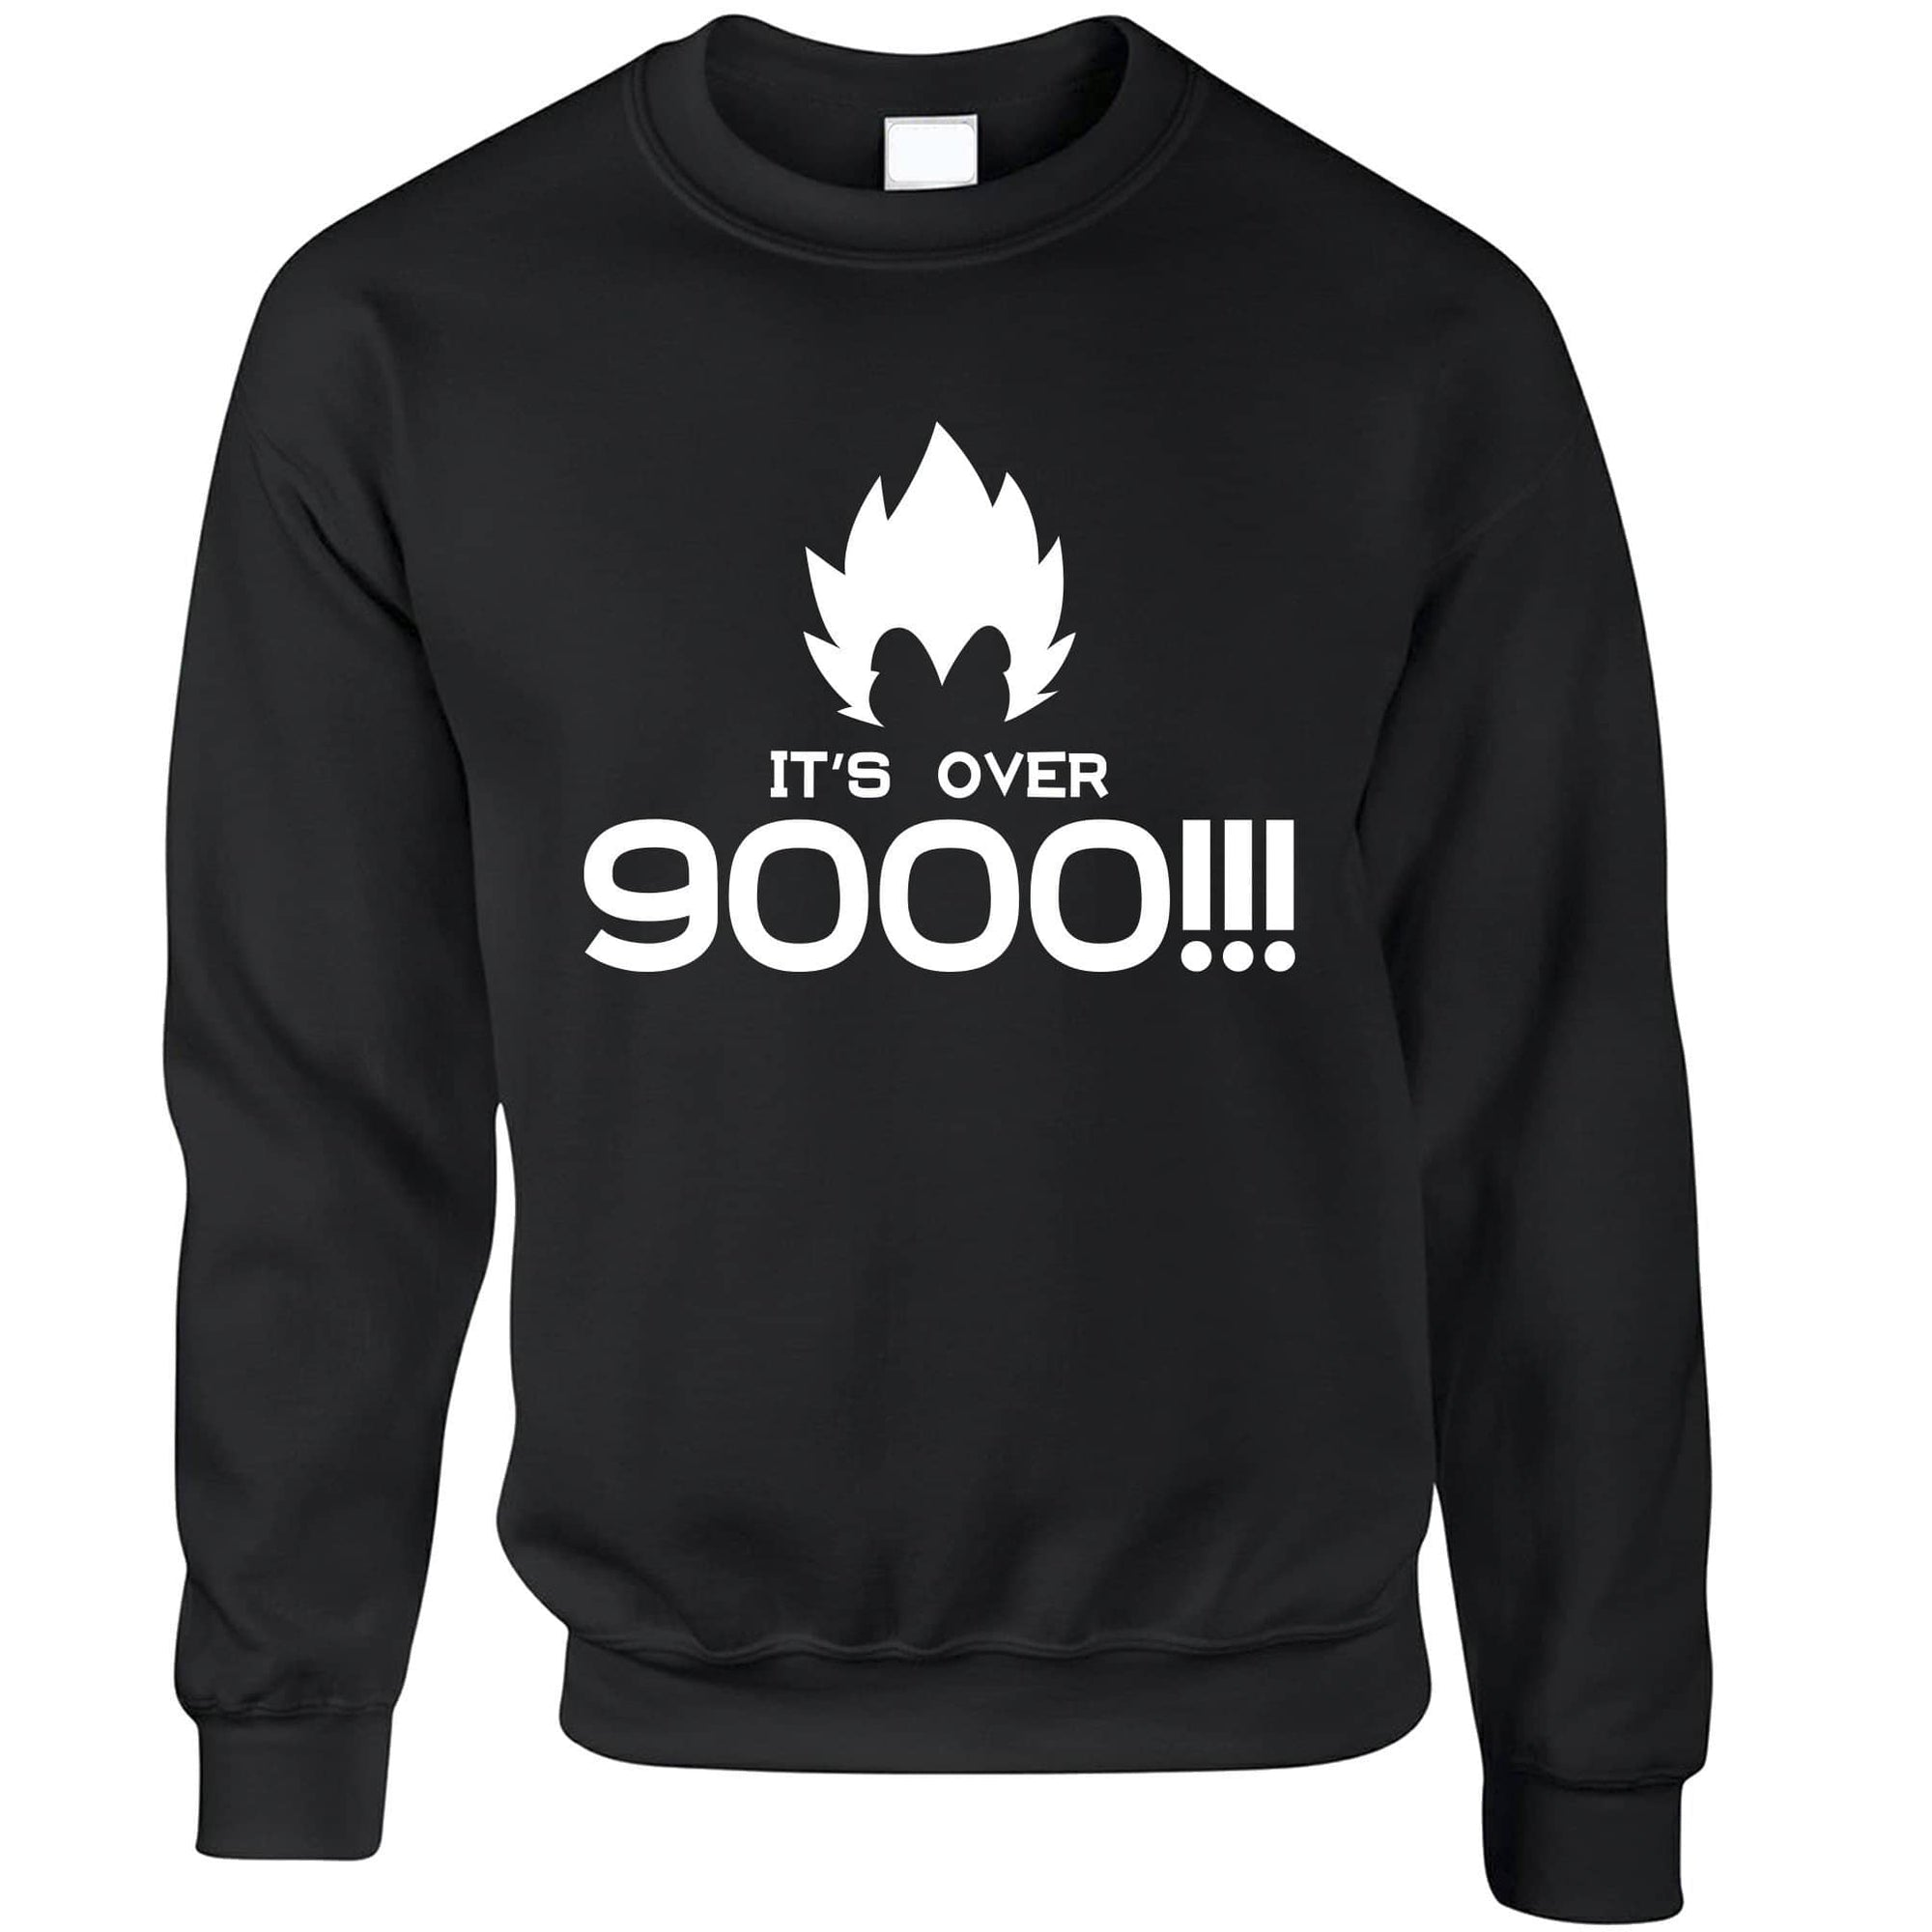 Funny Anime Parody Sweatshirt Jumper It's Over 9000!! Slogan